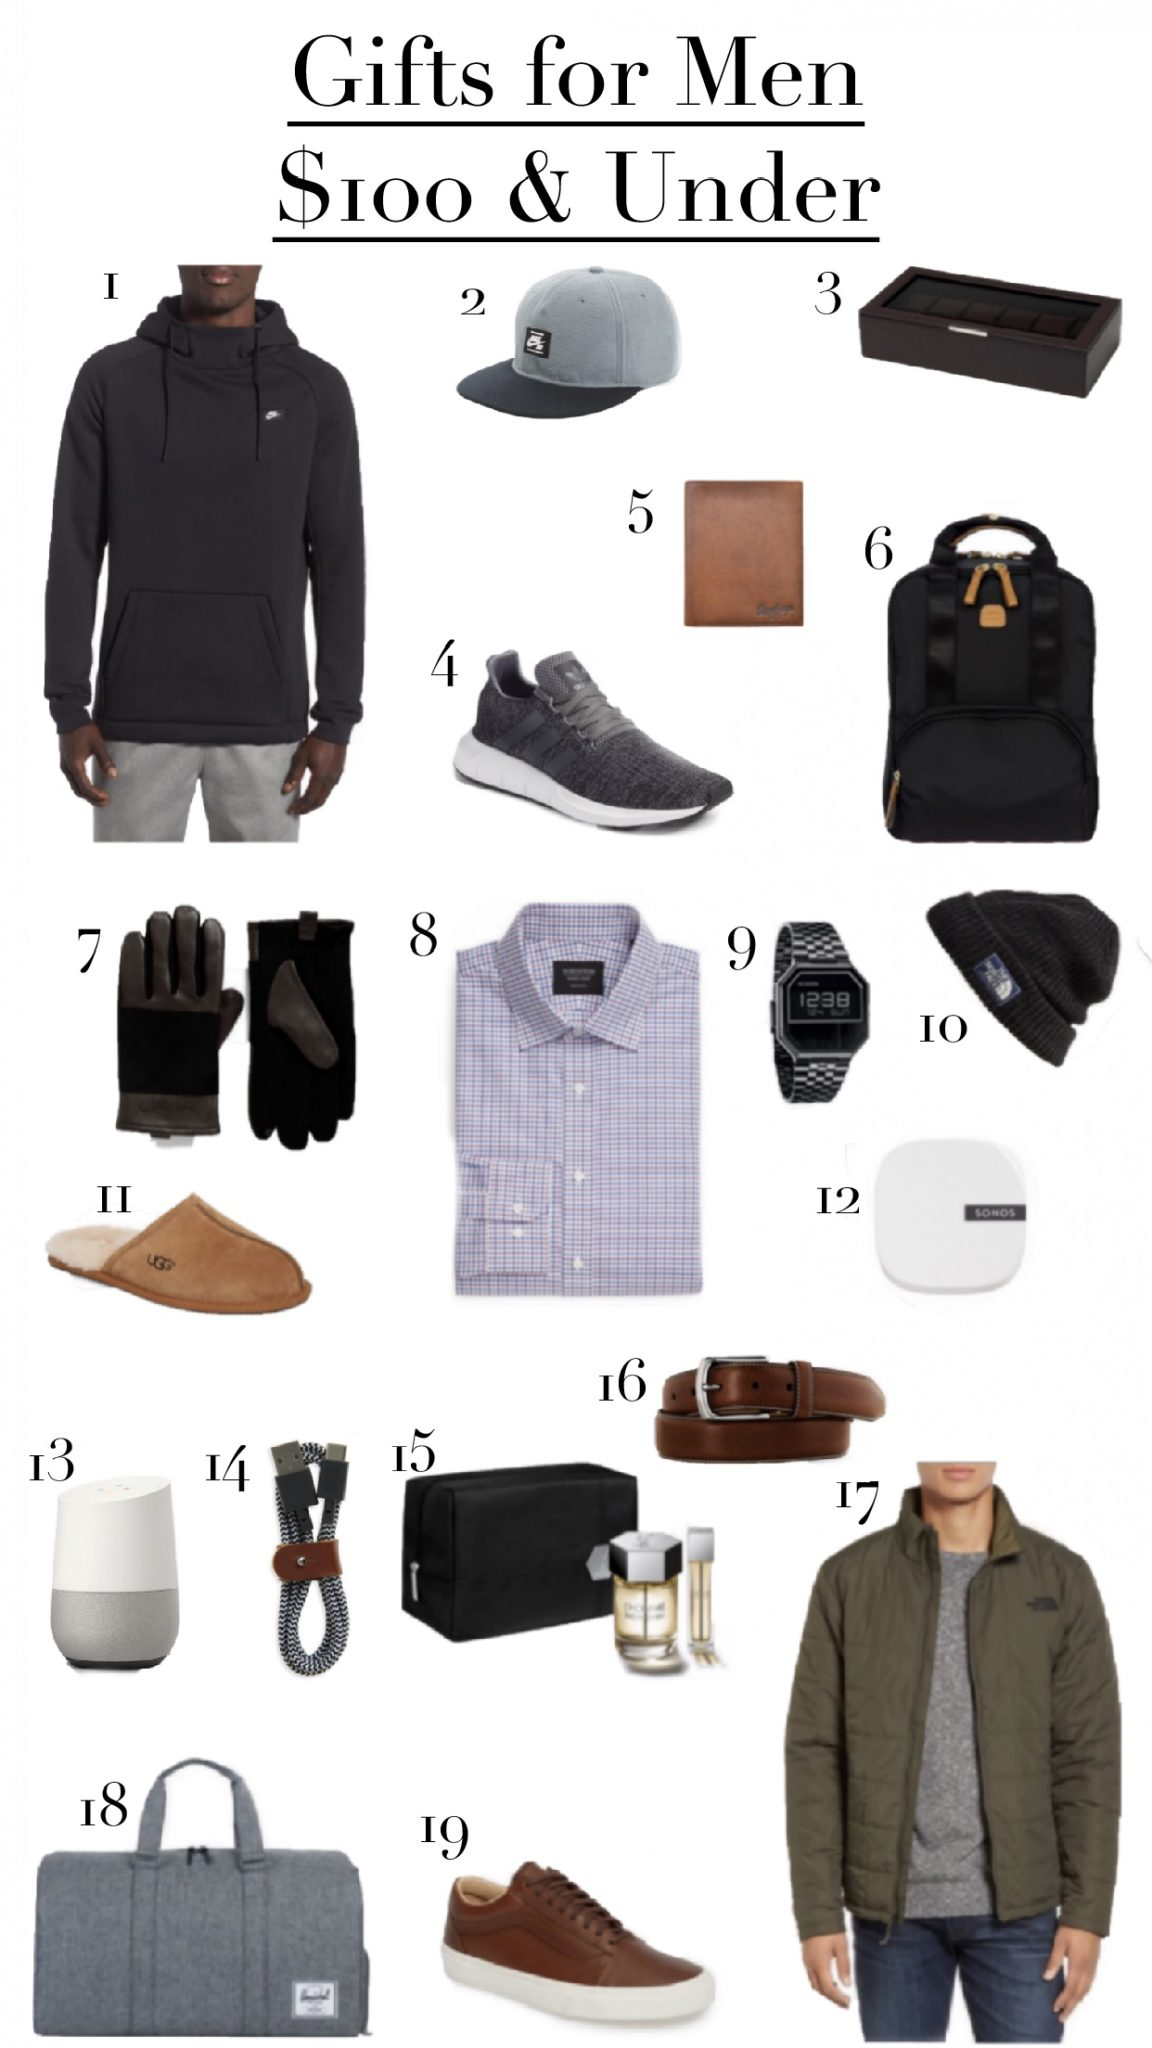 Men's Gifts $100 and Under